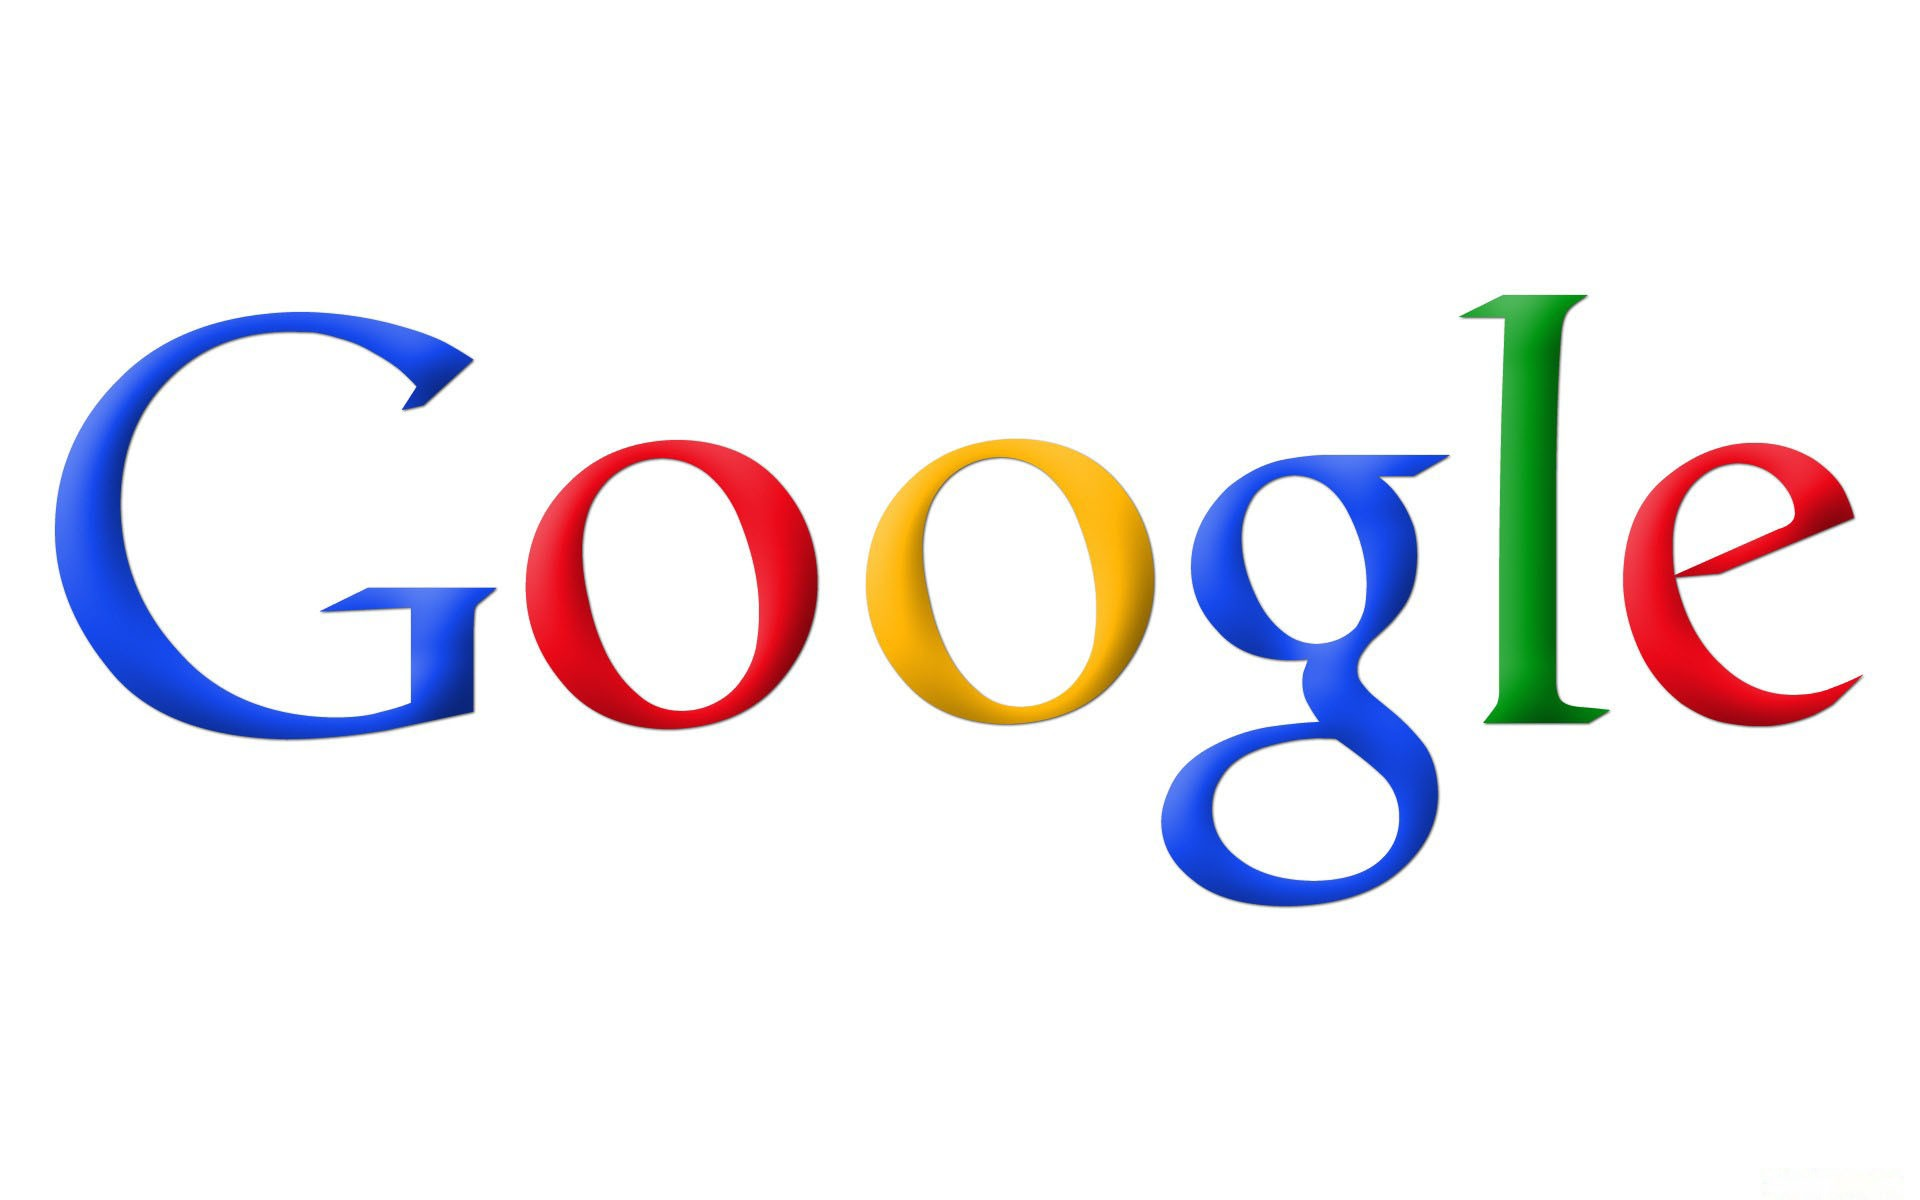 Google_Company_Logo_HD_Wallpapers.jpg